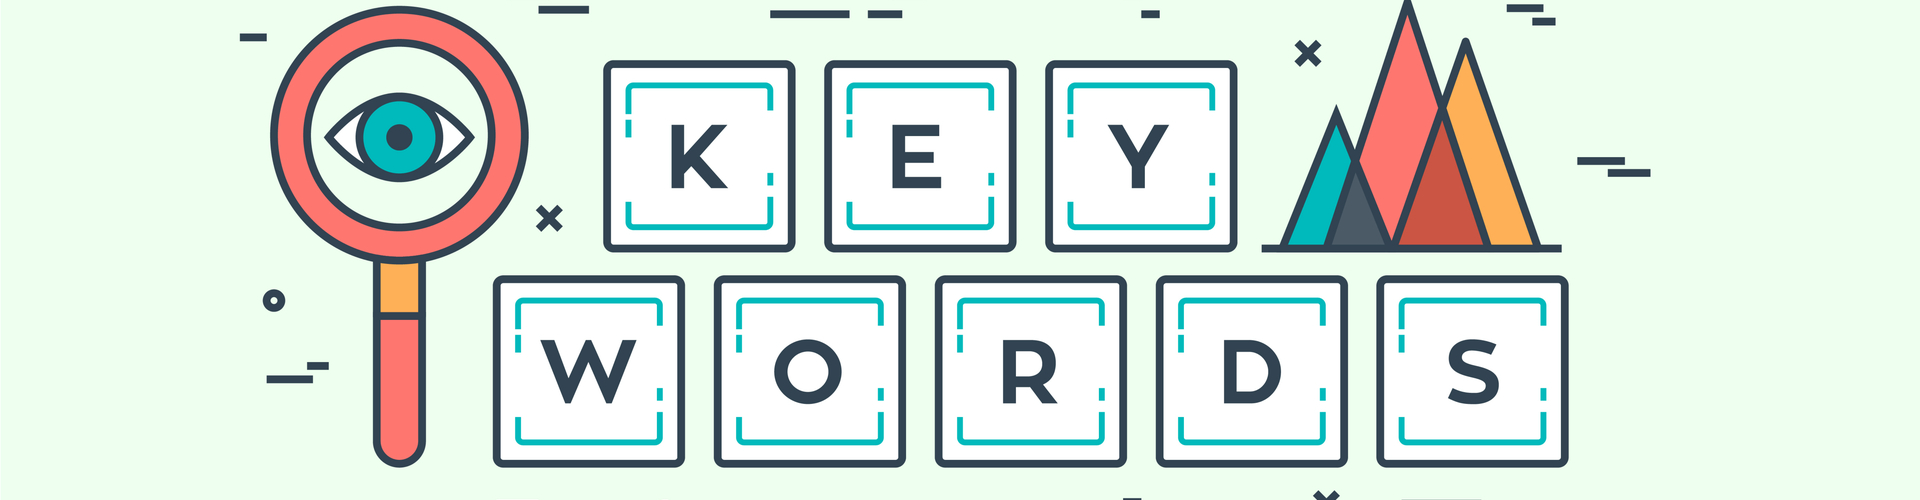 What are the best SEO keyword research tools in 2019?